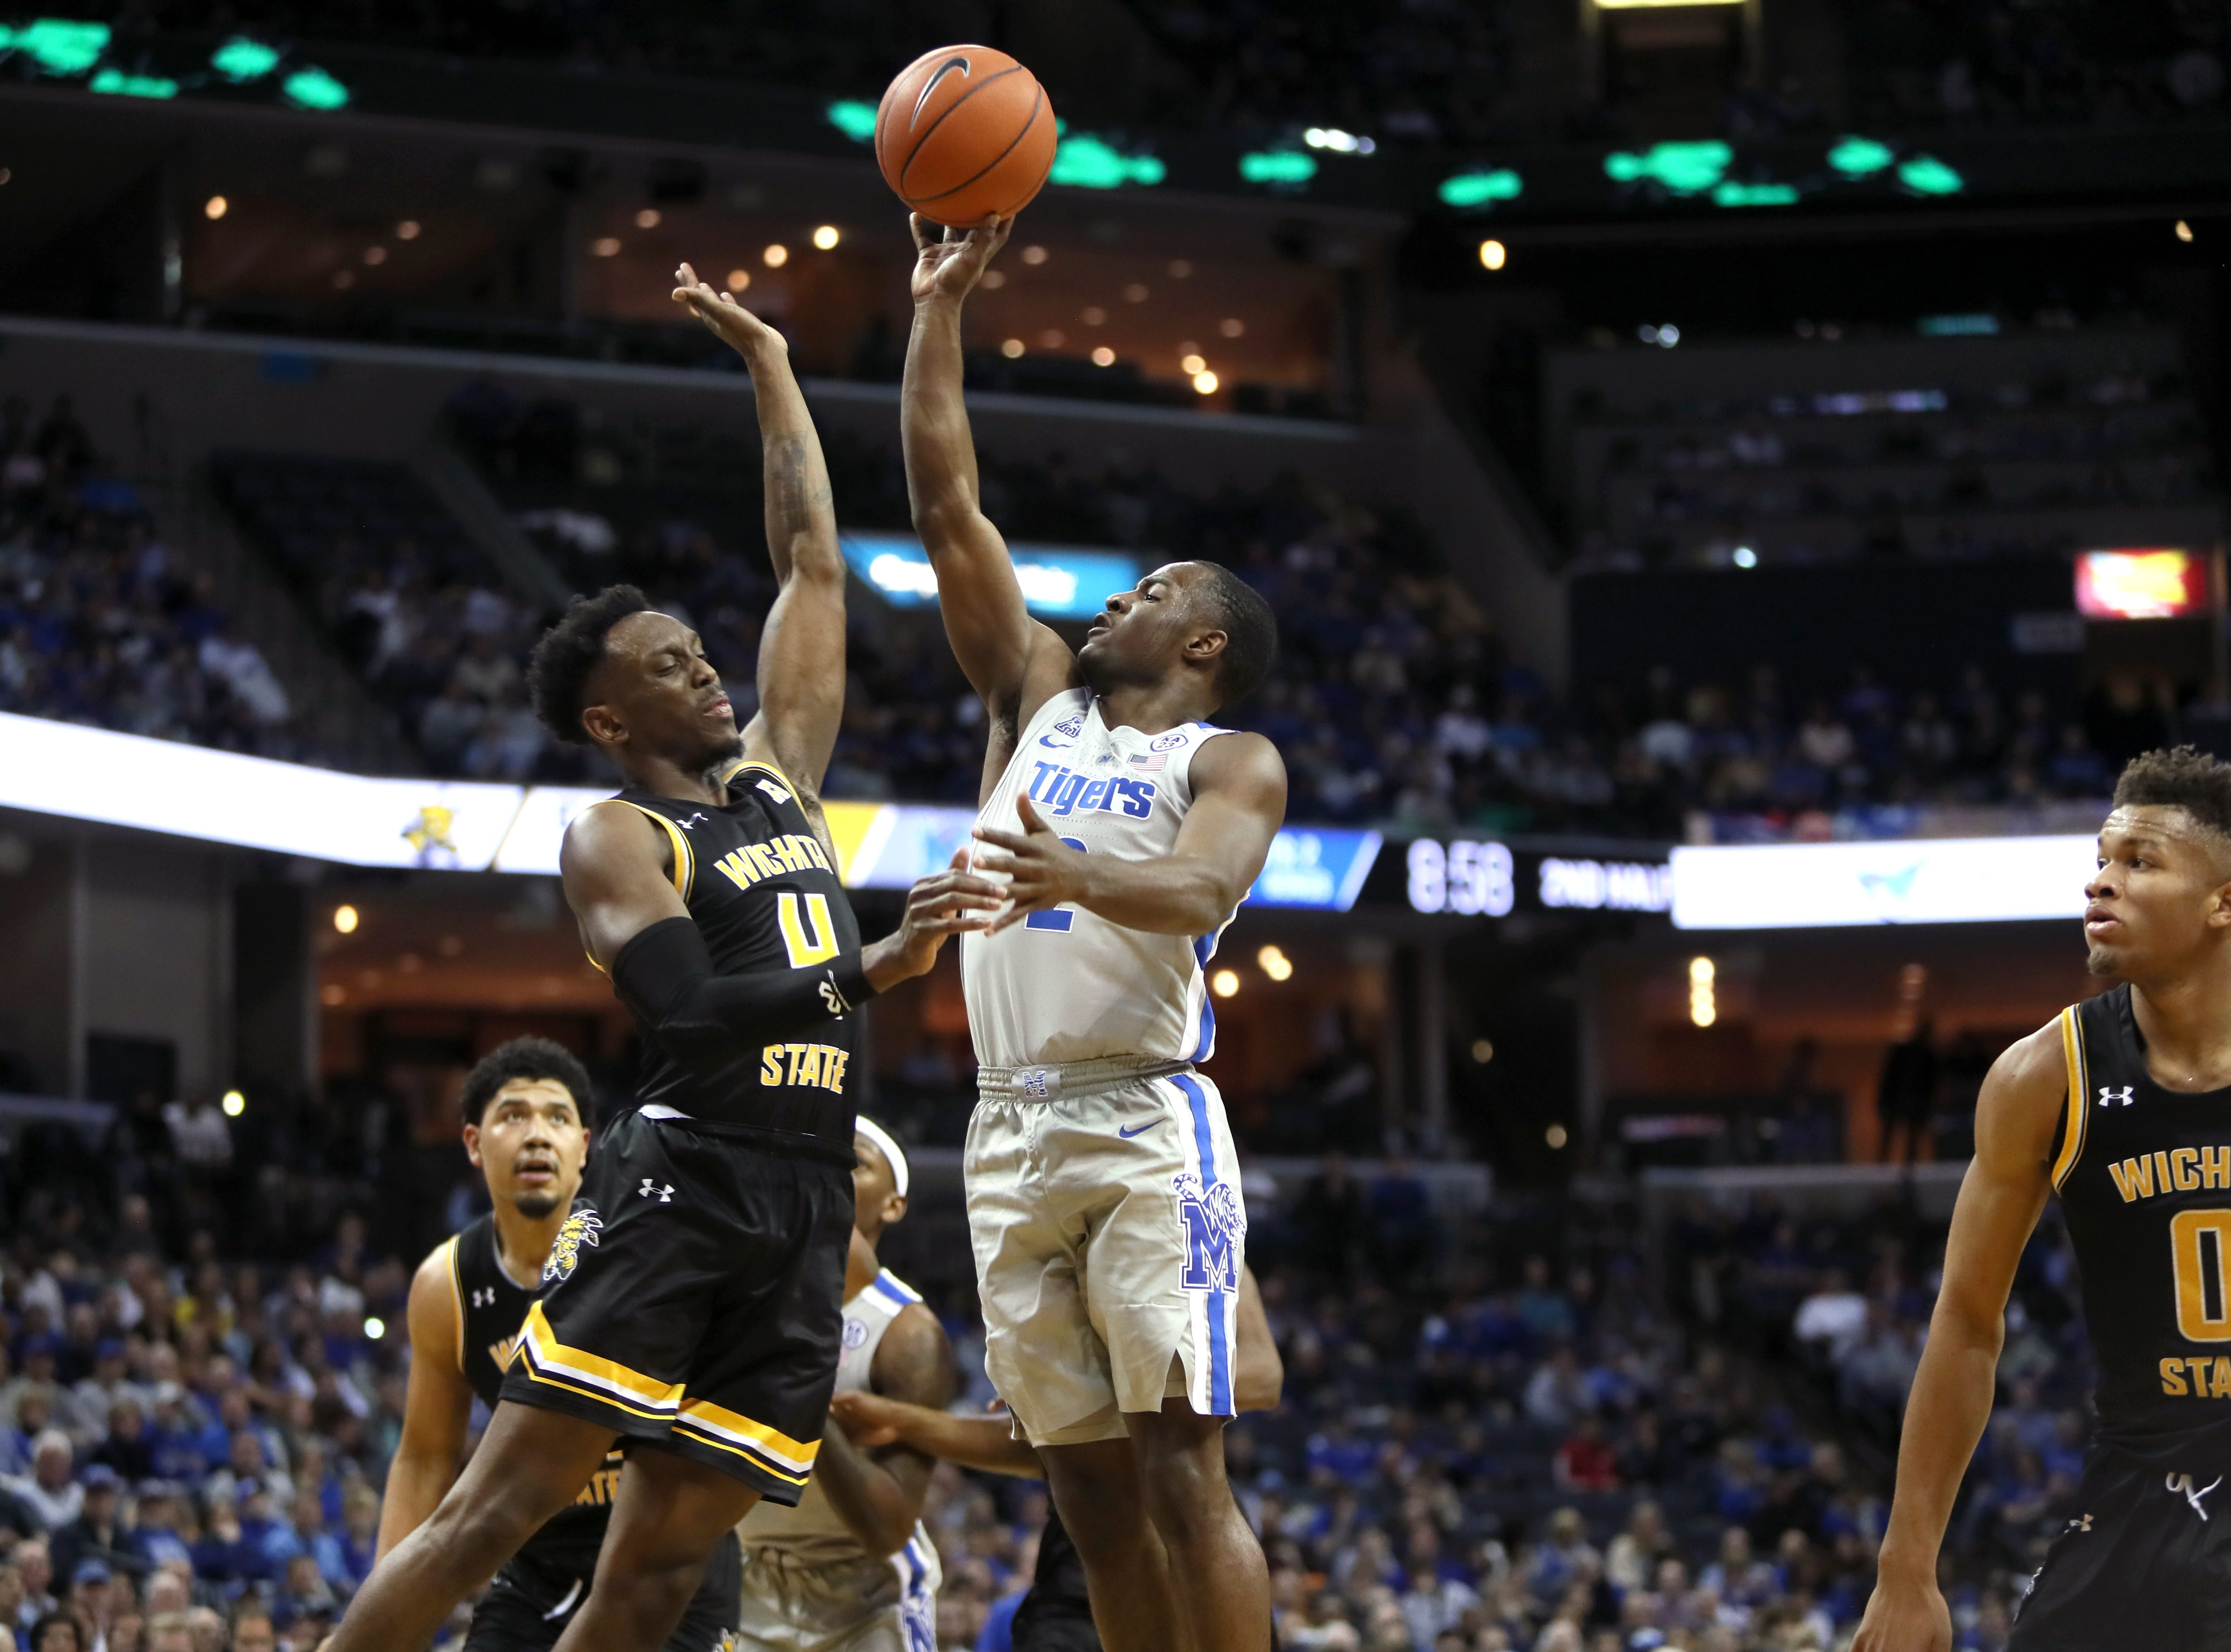 Memphis Tigers guard Alex Lomax shoots the ball over Wichita State Shockers guard Samajae Haynes-Jones during their game at the FedExForum on Thursday, Jan. 3, 2019.